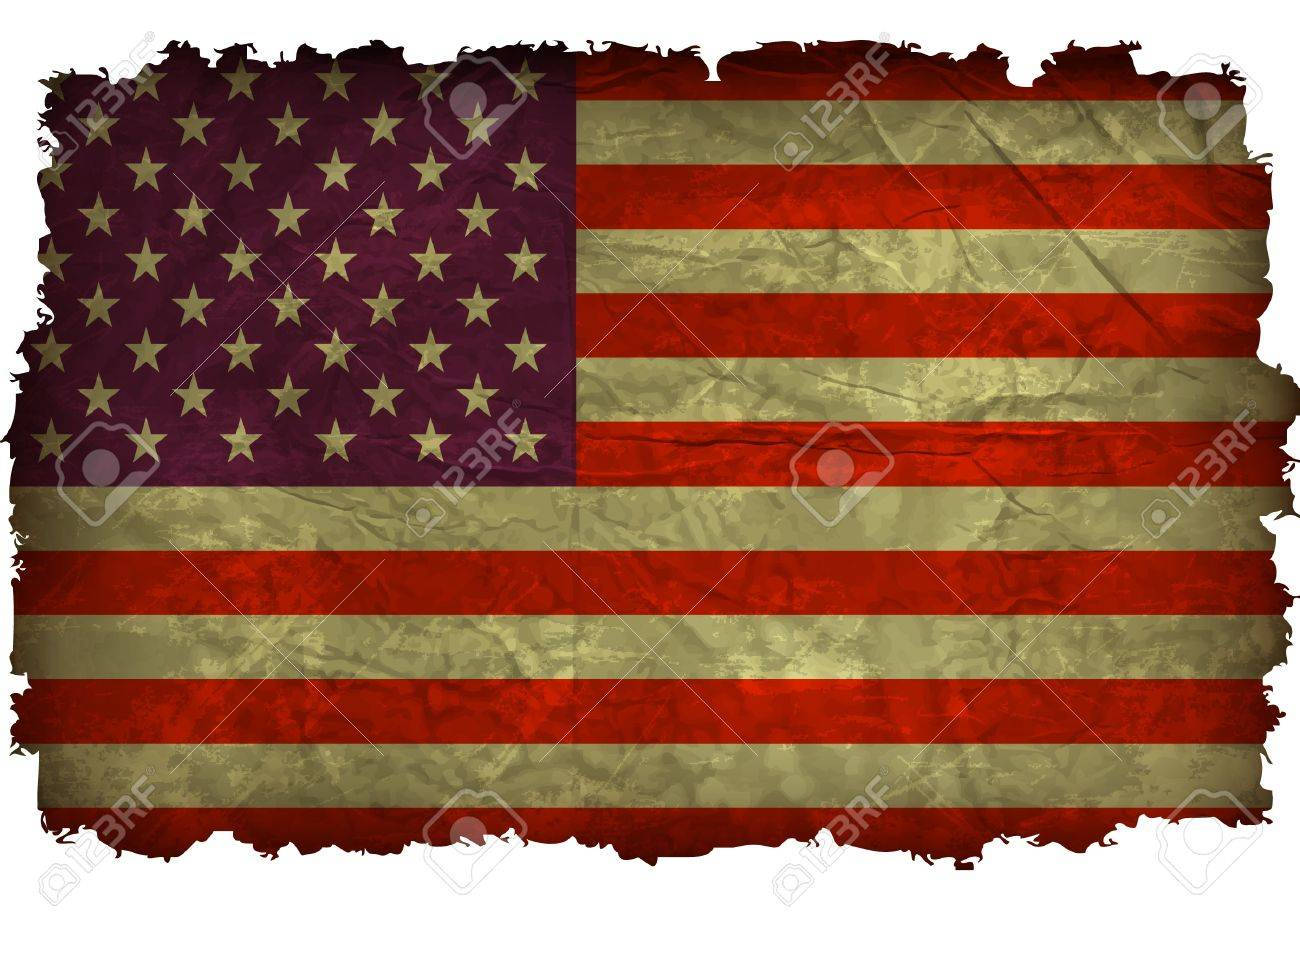 An Grunge American Flag With Charred Edges Stock Vector